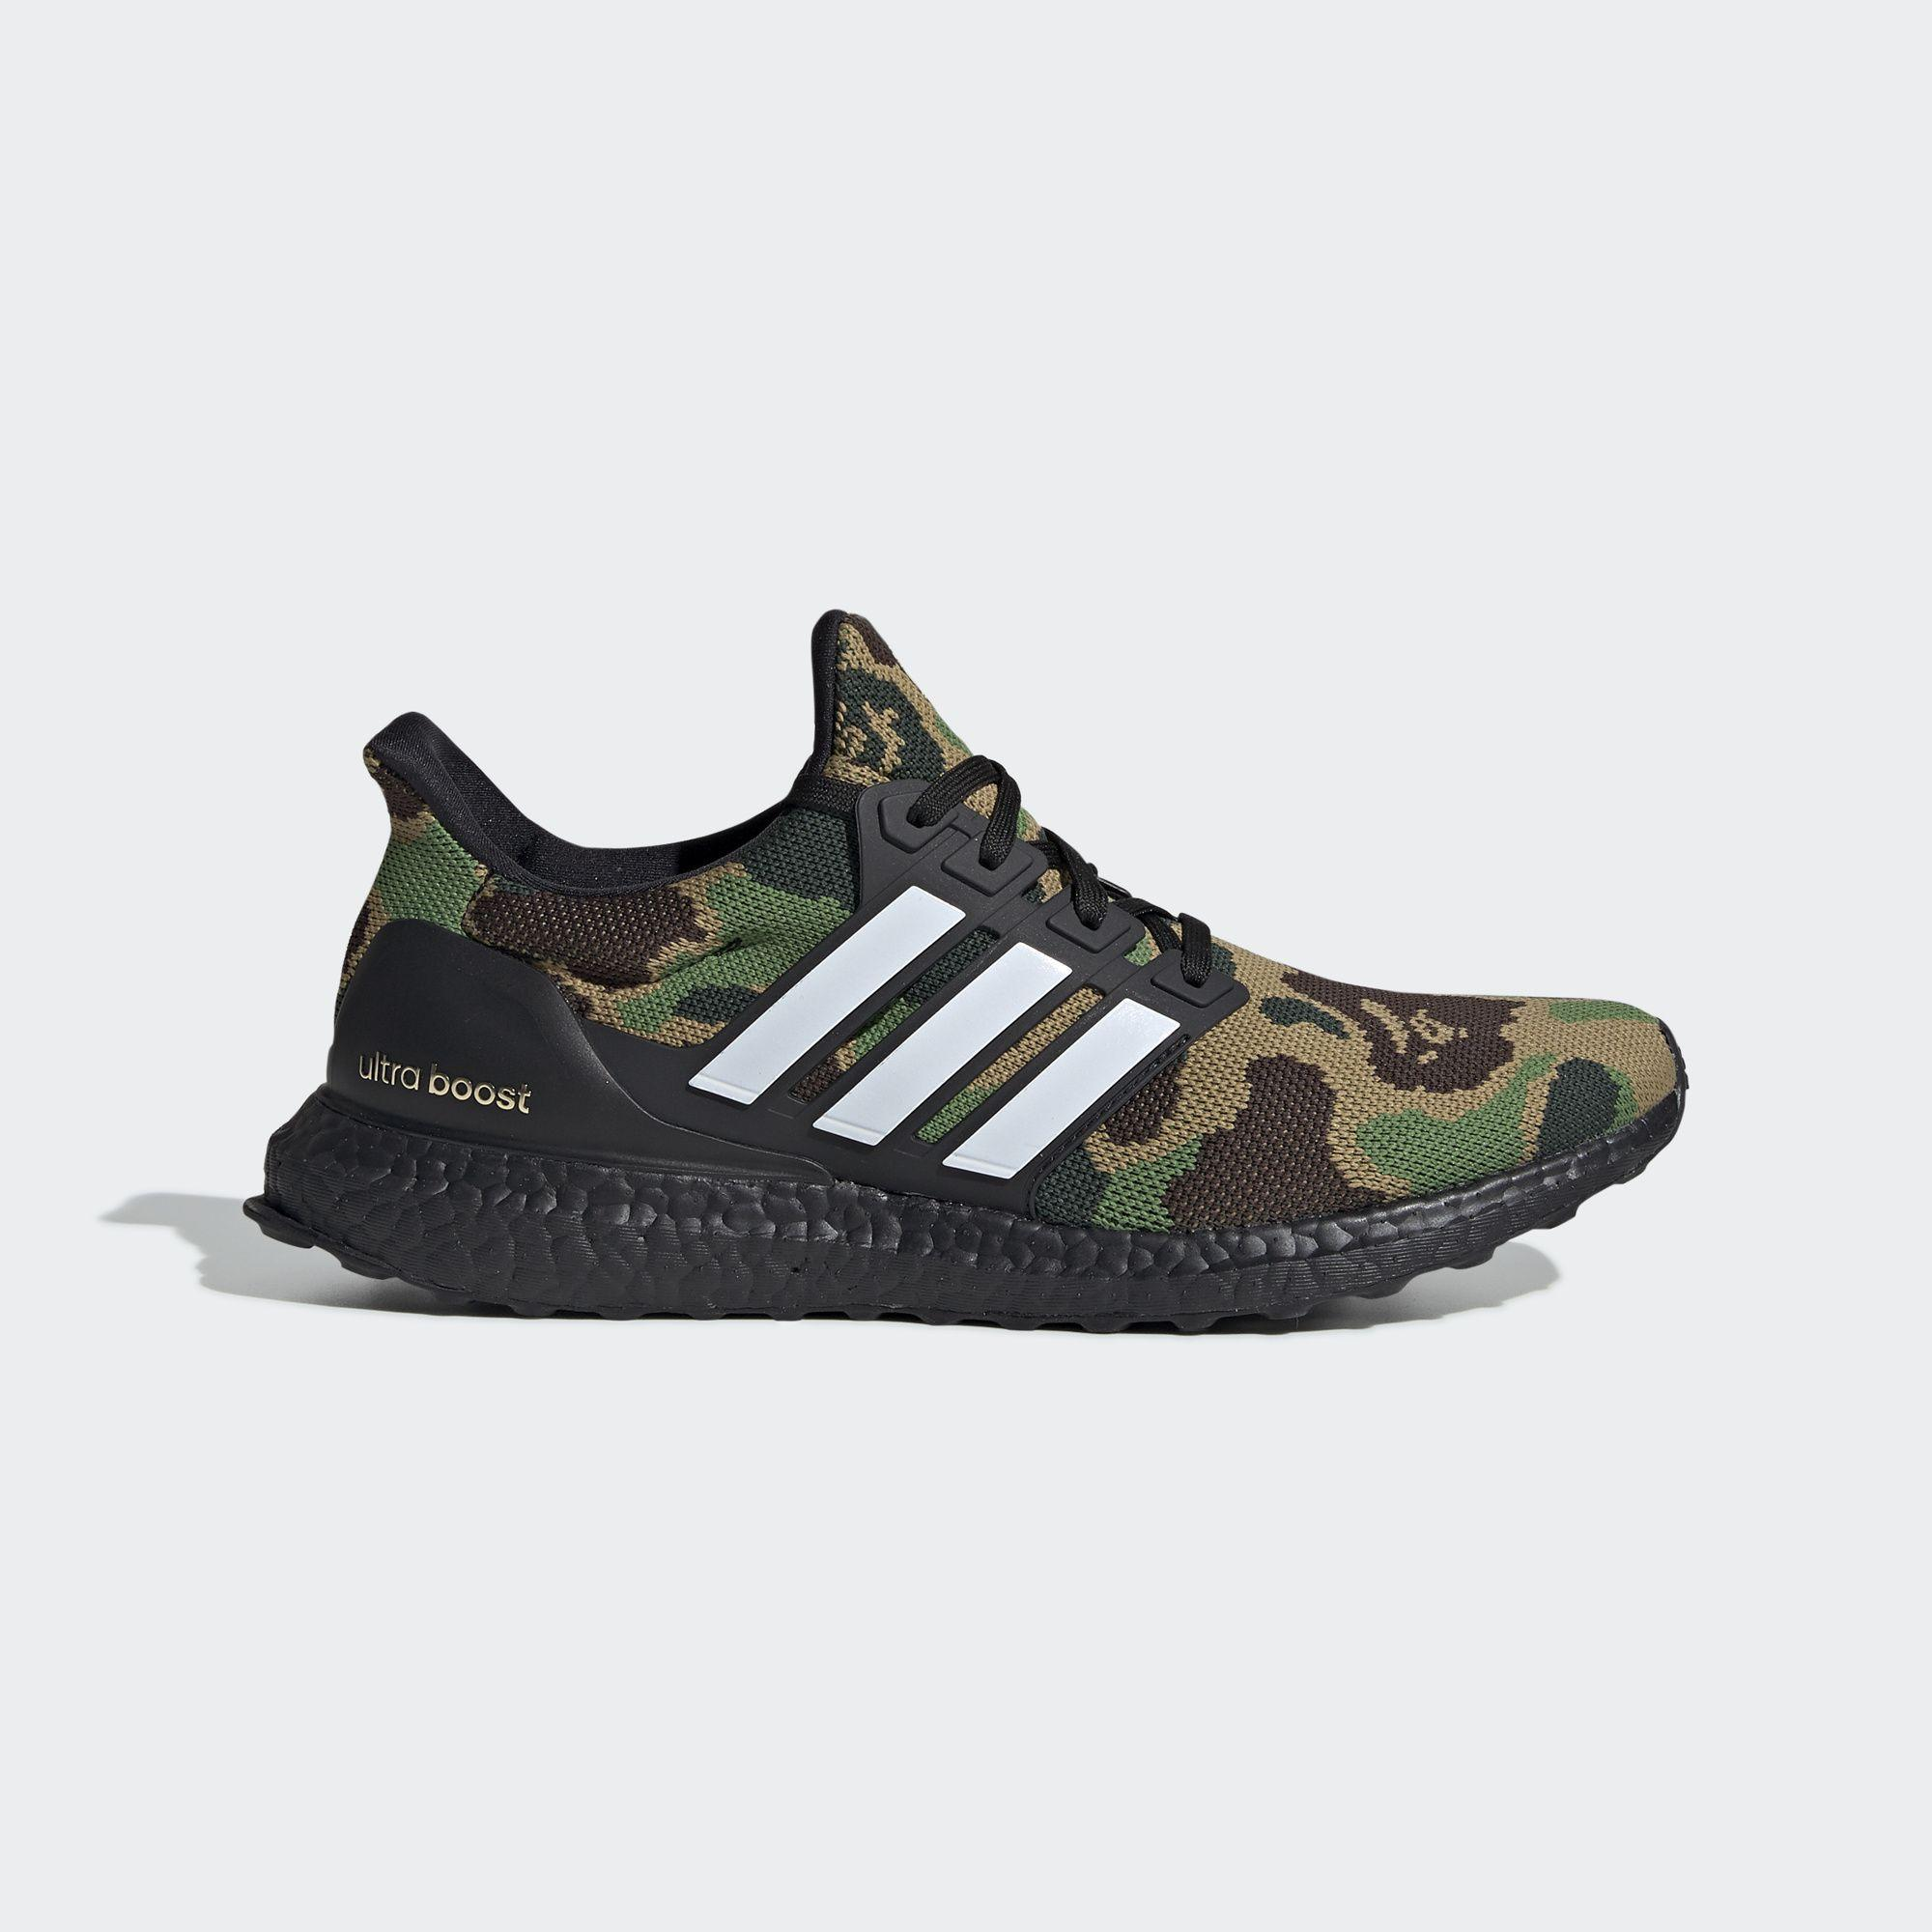 finest selection 1a0ee d40e4 Ultraboost Bape Green